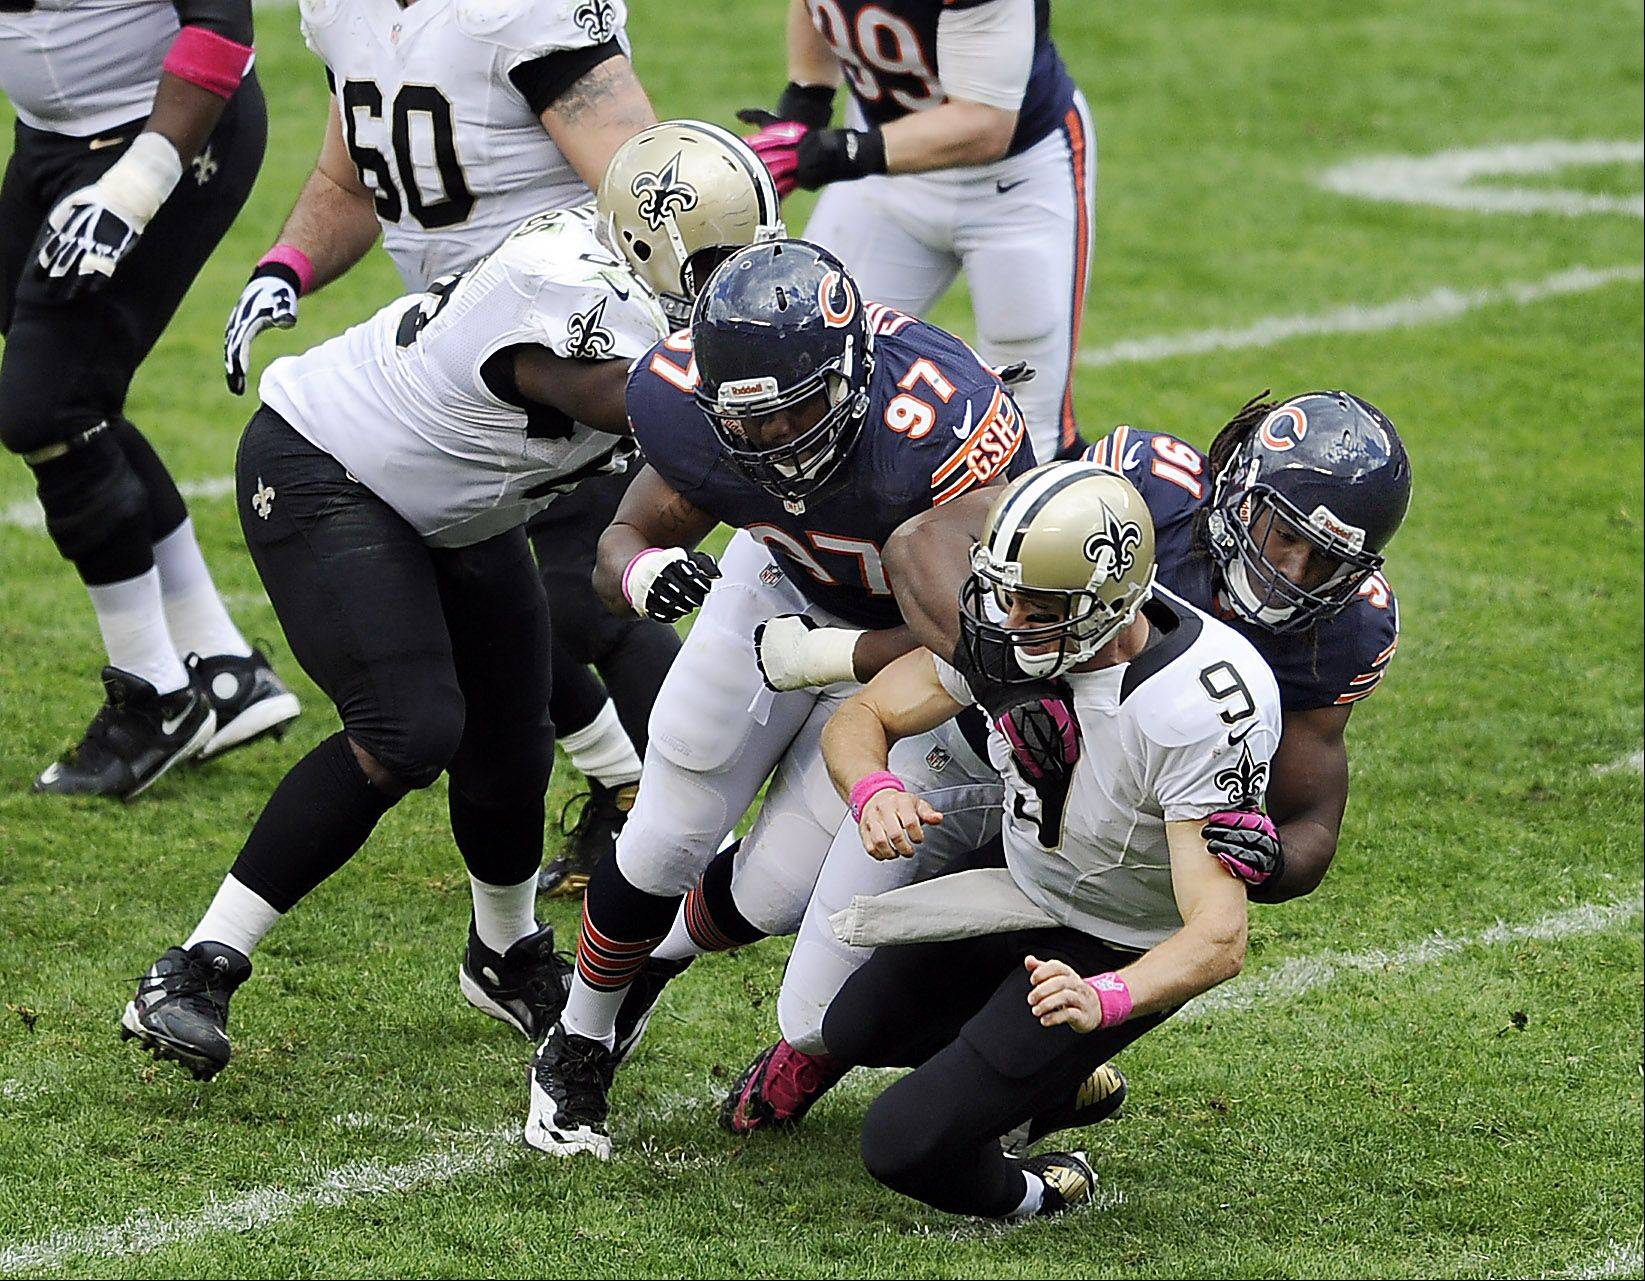 David Bass and Landon Cohen bring down Saints quarterback Drew Brees in the third quarter of New Orleans' 26-18 victory at Soldier Field earlier this season. Bass will likely start today for the injured Shea McClellin.